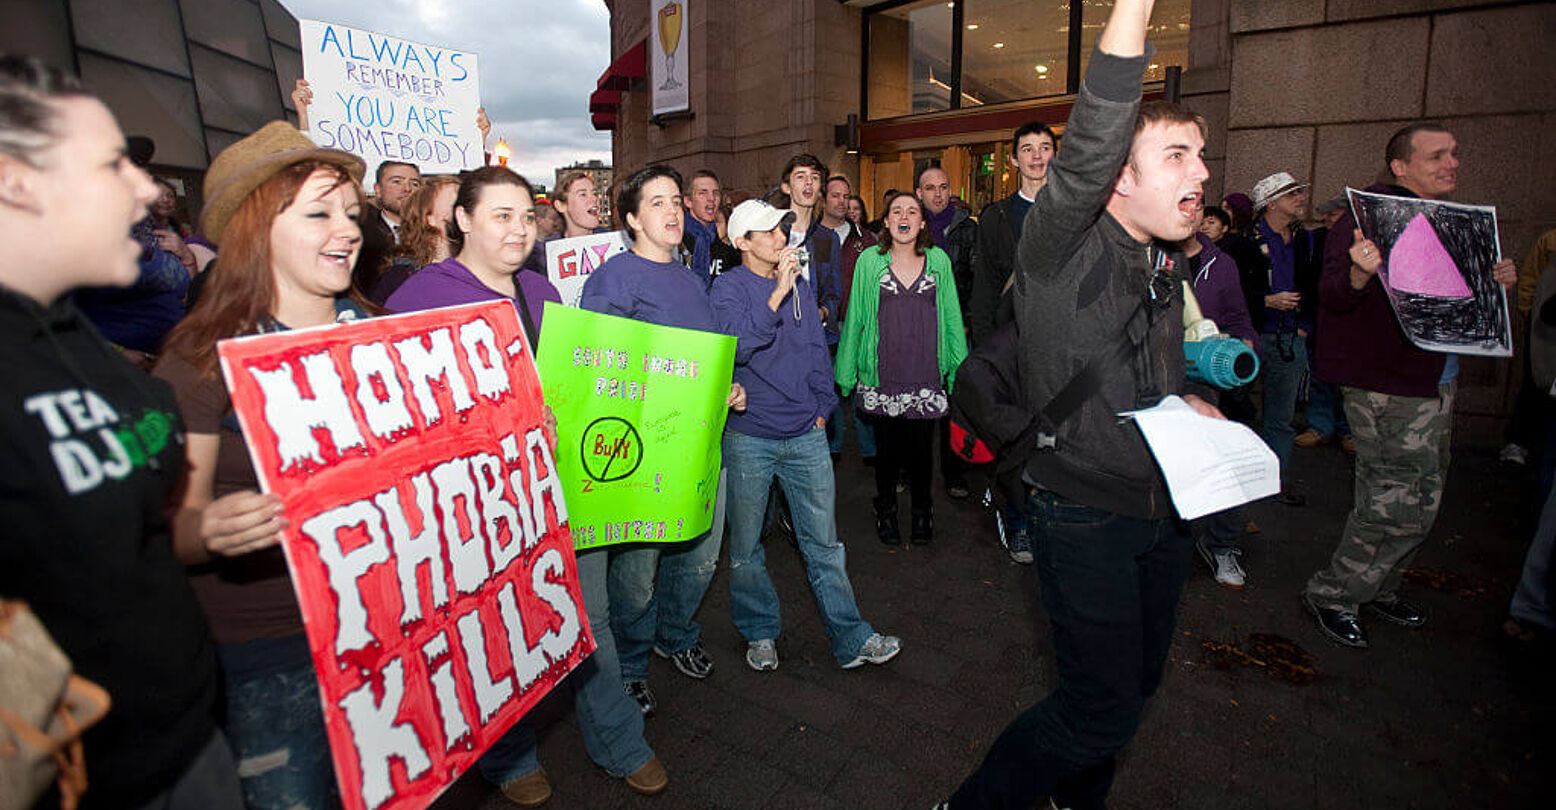 "Protestors march after a three minute Homophobia/Transphobia Kills Die-In protest at South Station in Boston, MA held at the height of rush hour sponsored by ""Join the Impact Massachusetts"" on November 5, 2010. About 300 people took part in the protest. (Photo by Rick Friedman/Corbis via Getty Images)"